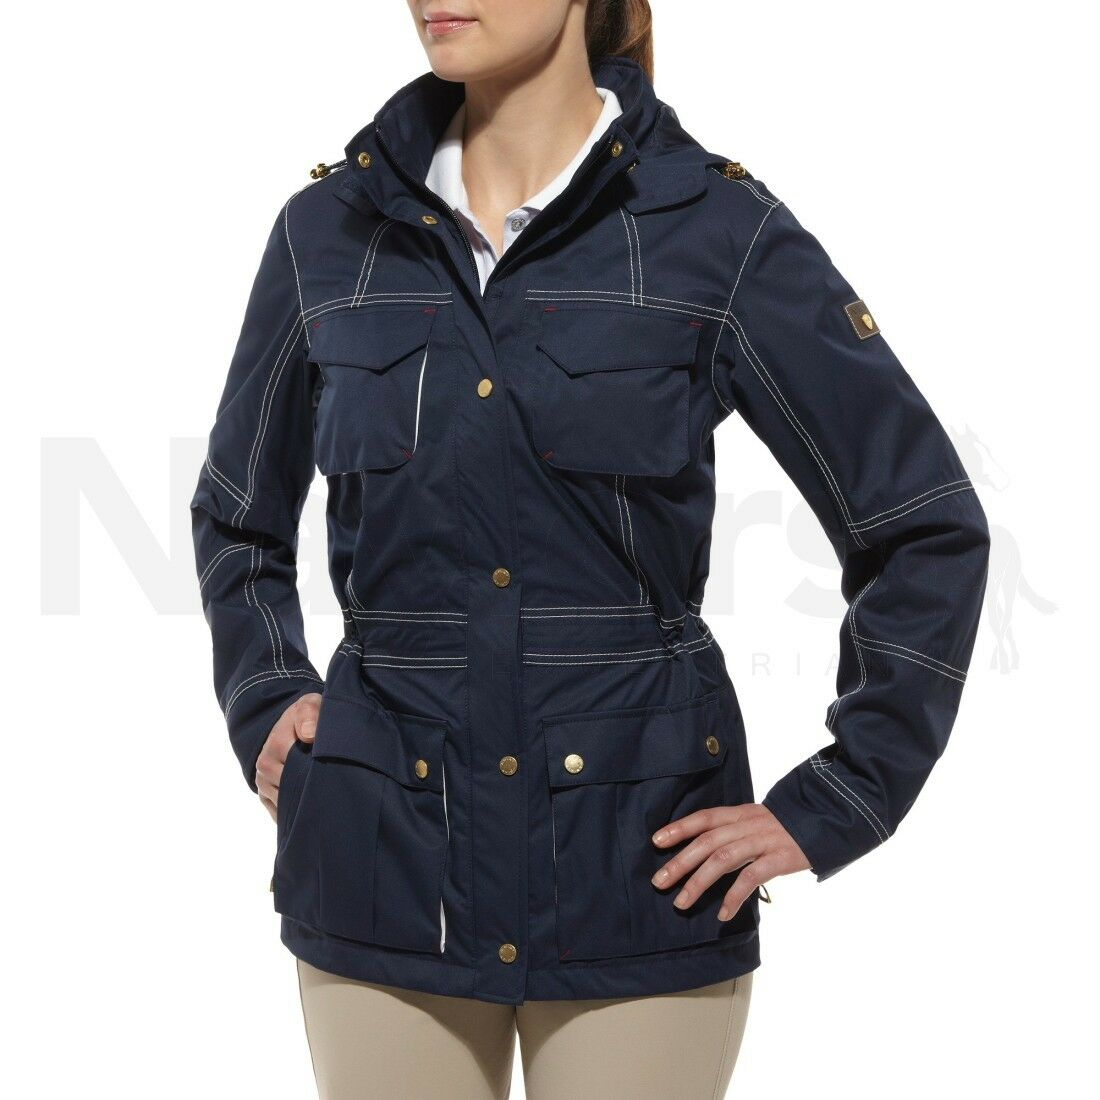 Ariat ® Damas Madeley Impermeable Parka Azul Marino